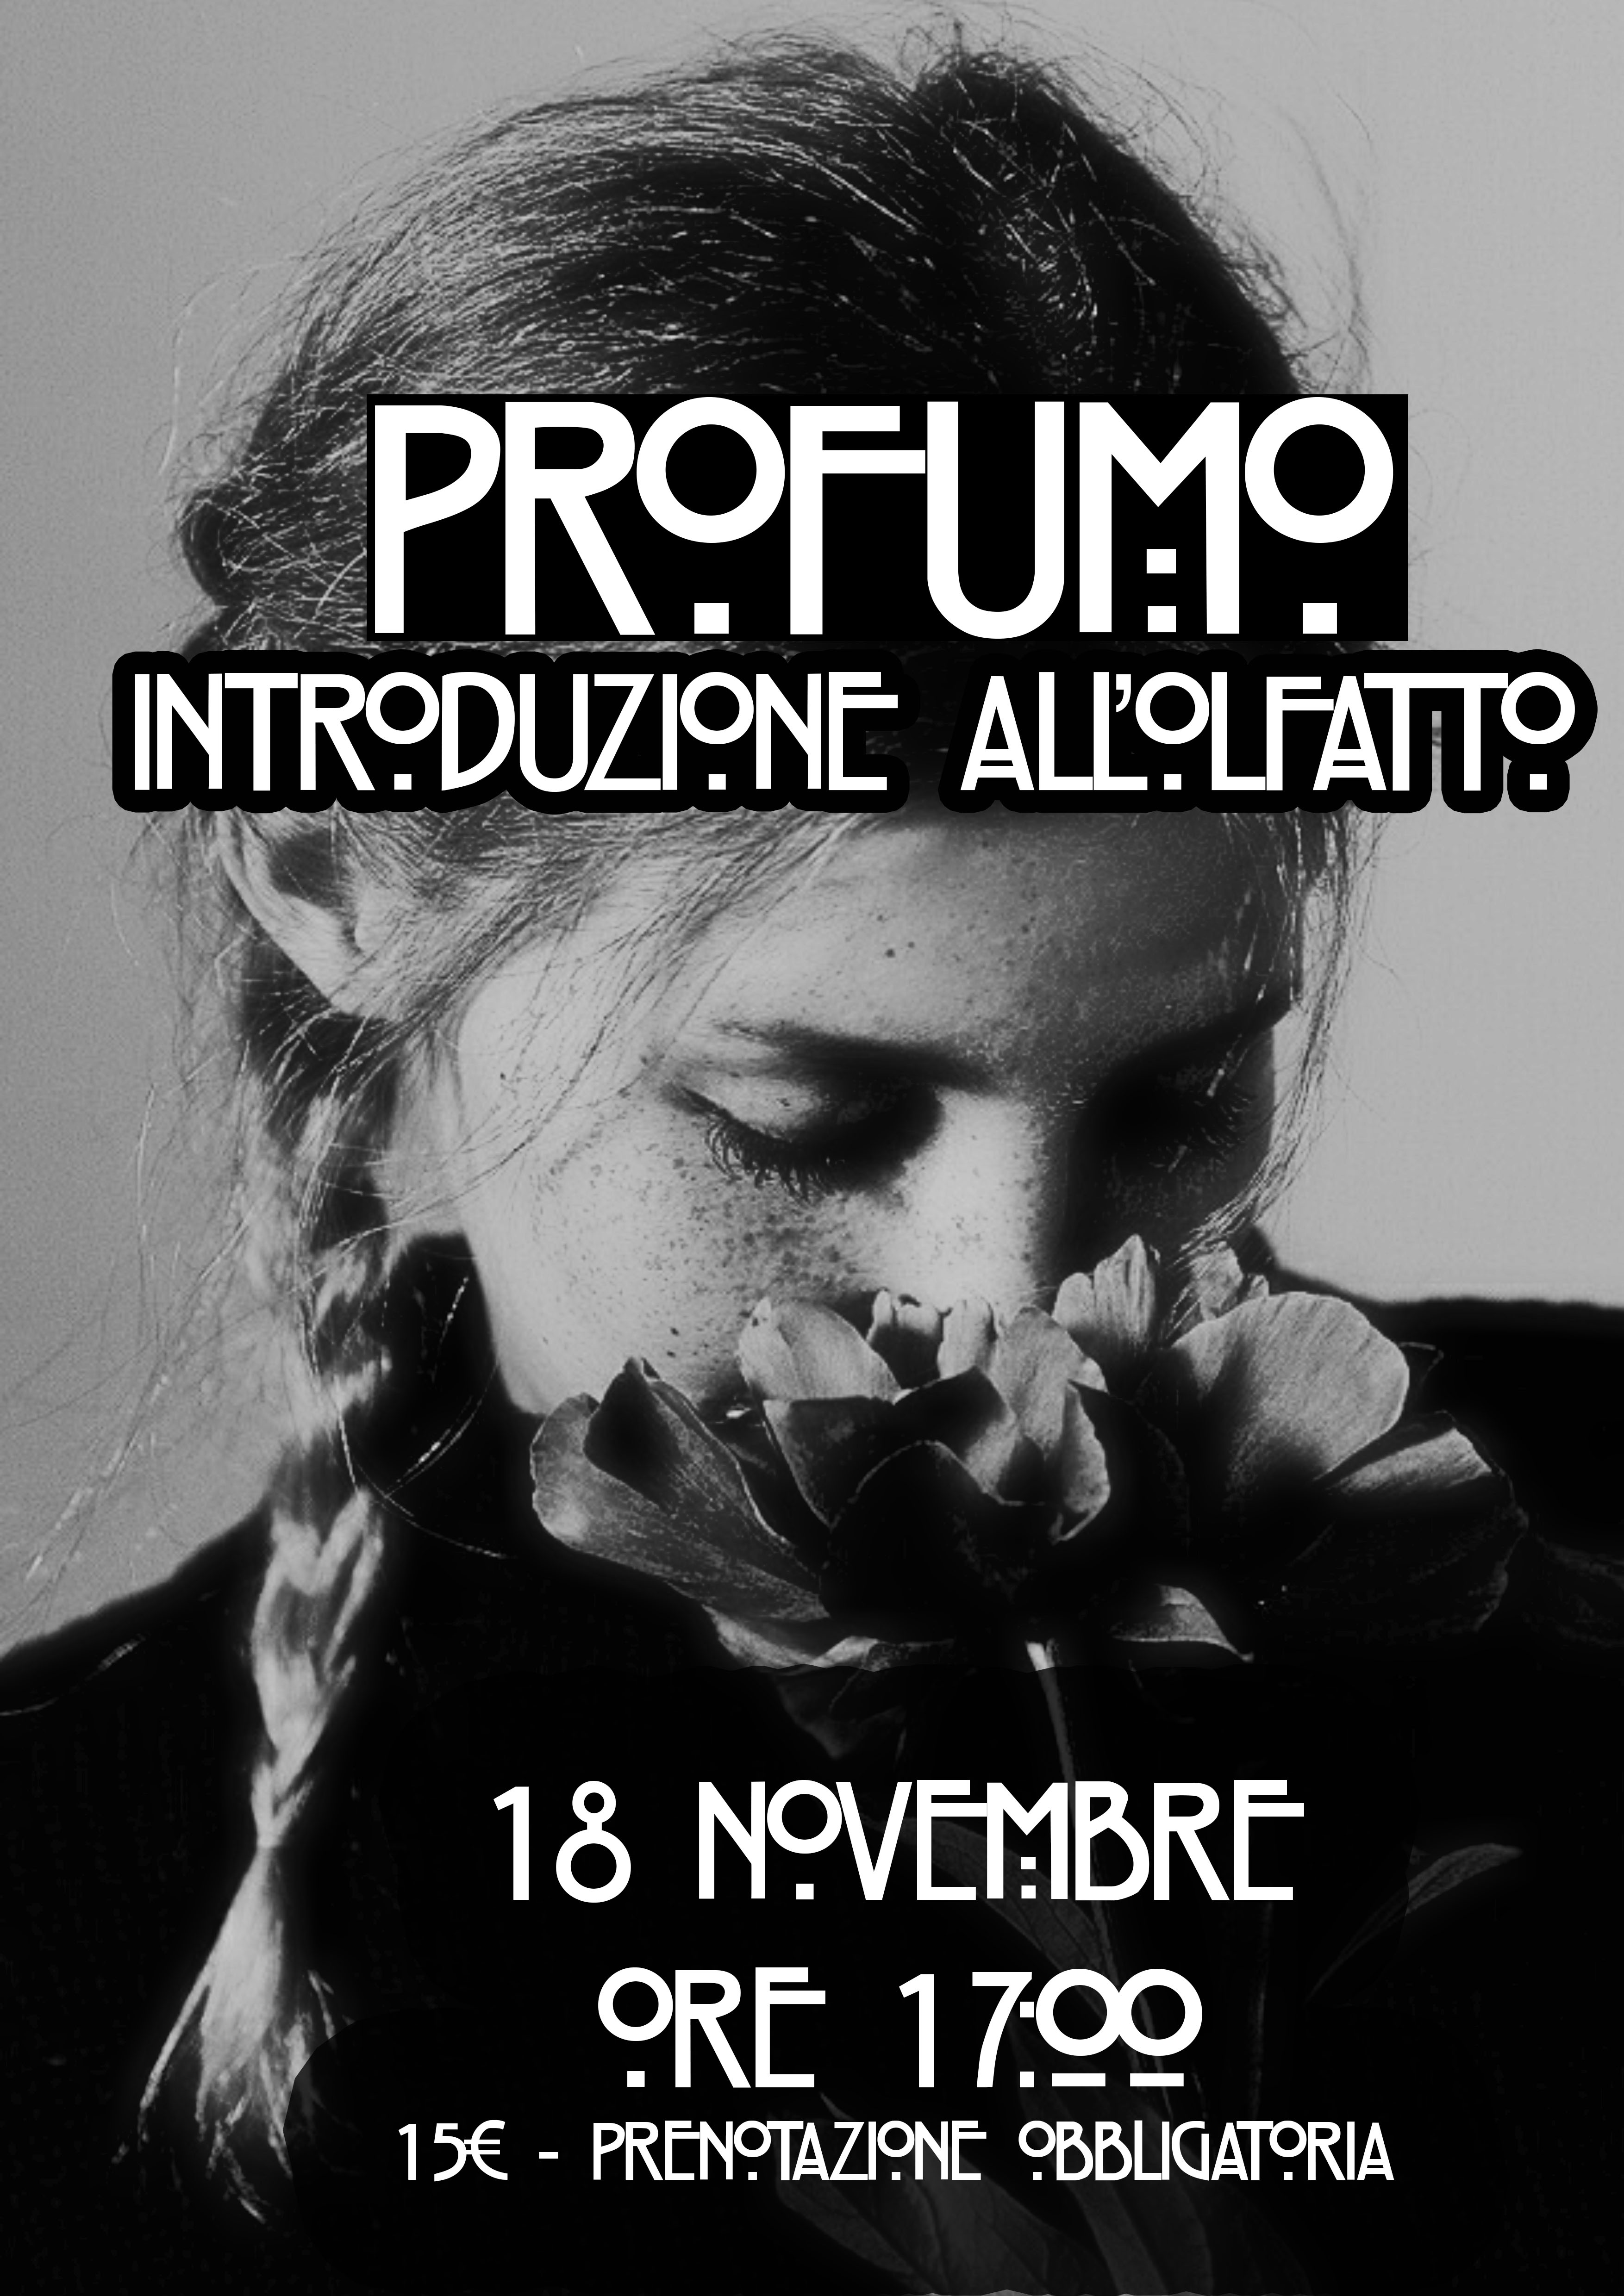 Evento profumo in Libreria